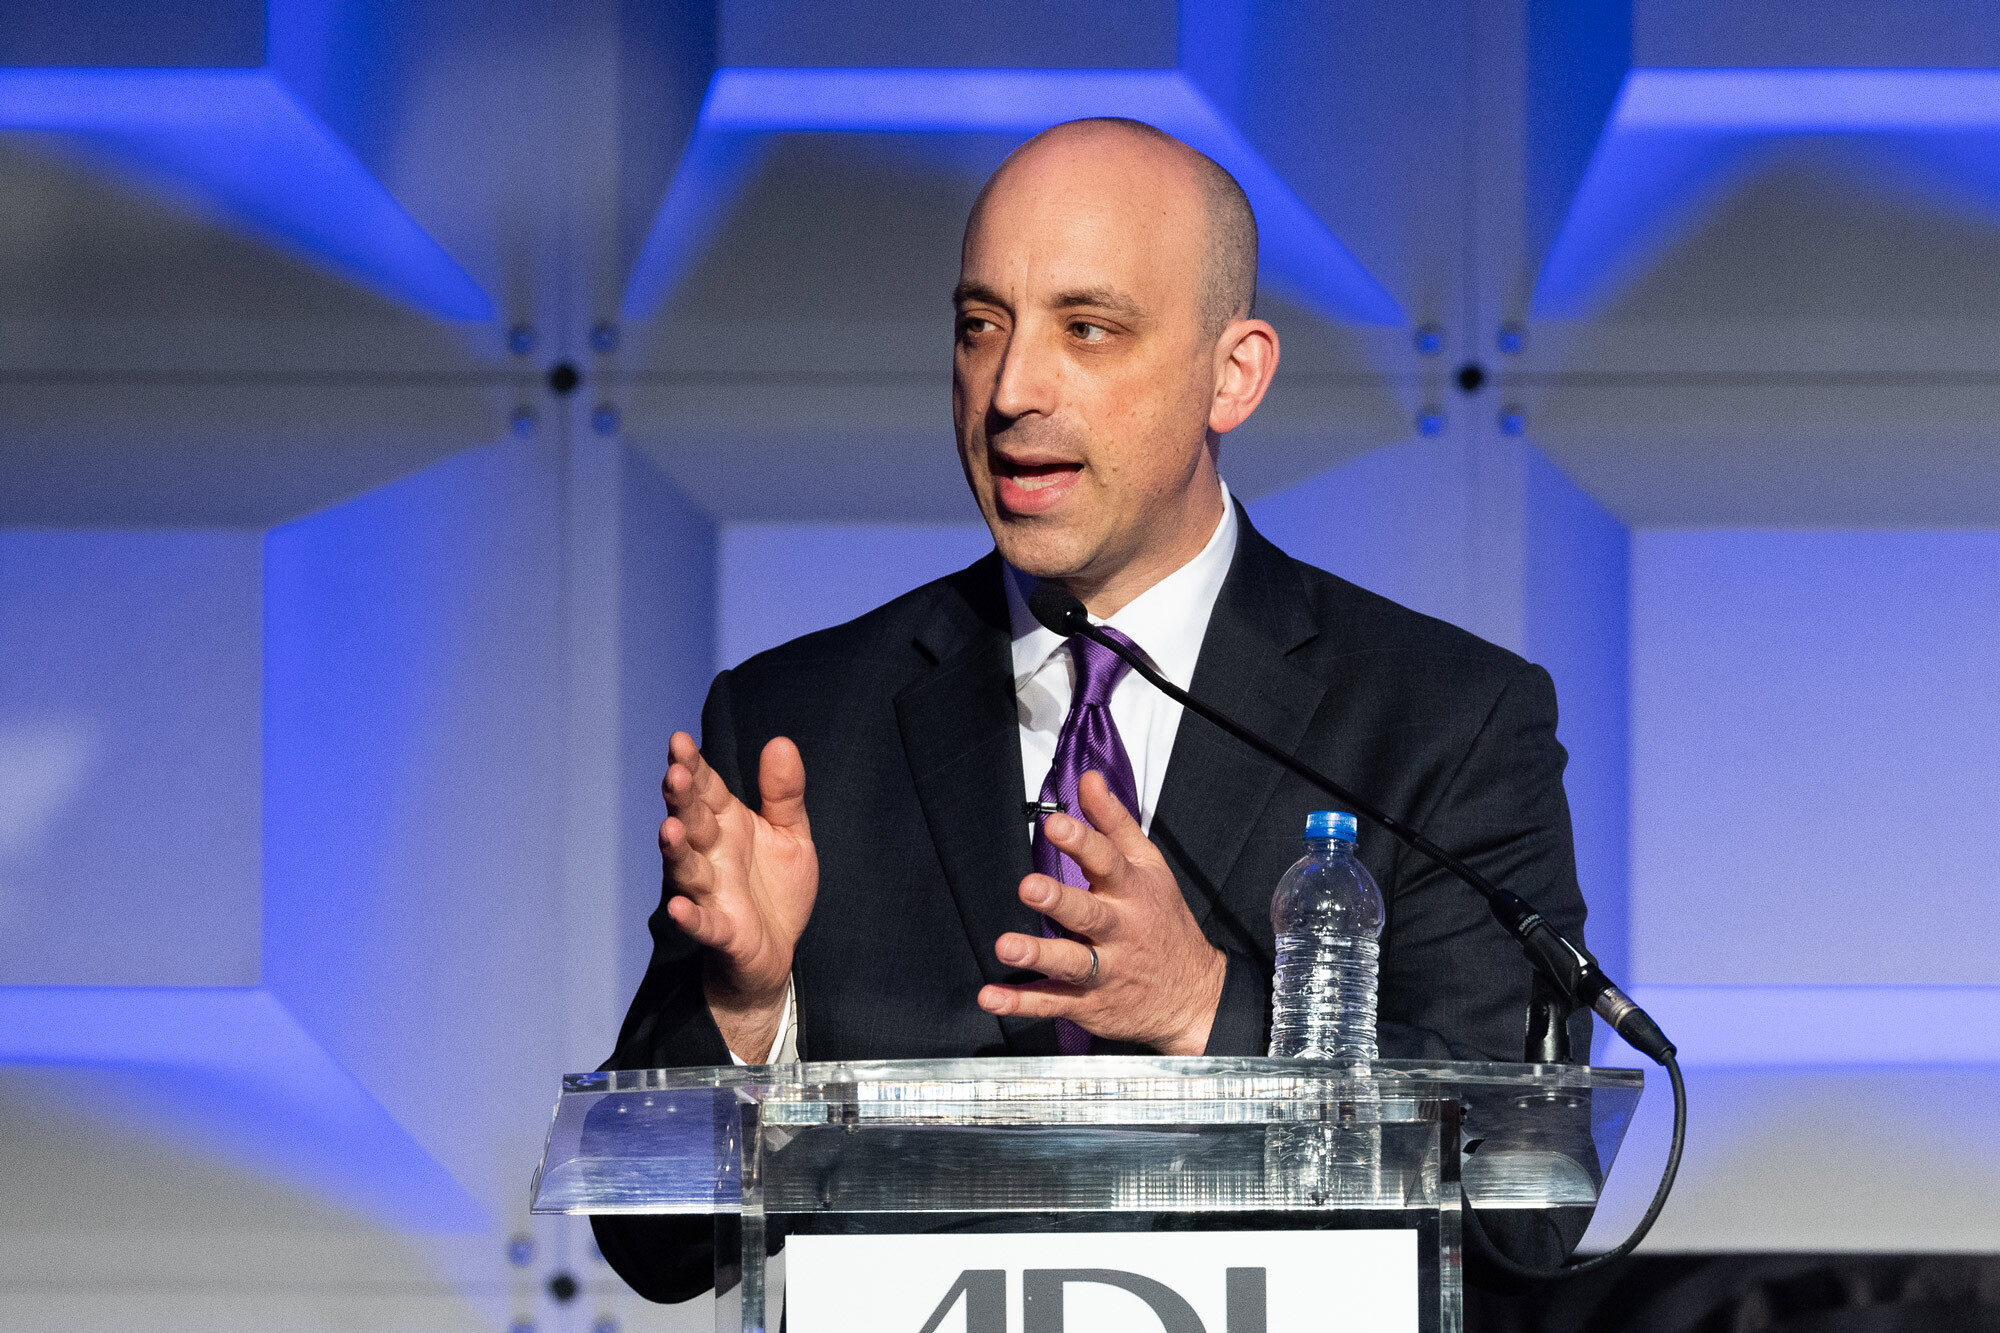 Anti-Defamation League CEO on Facebook: Never has a single company been responsible for so much misfortune